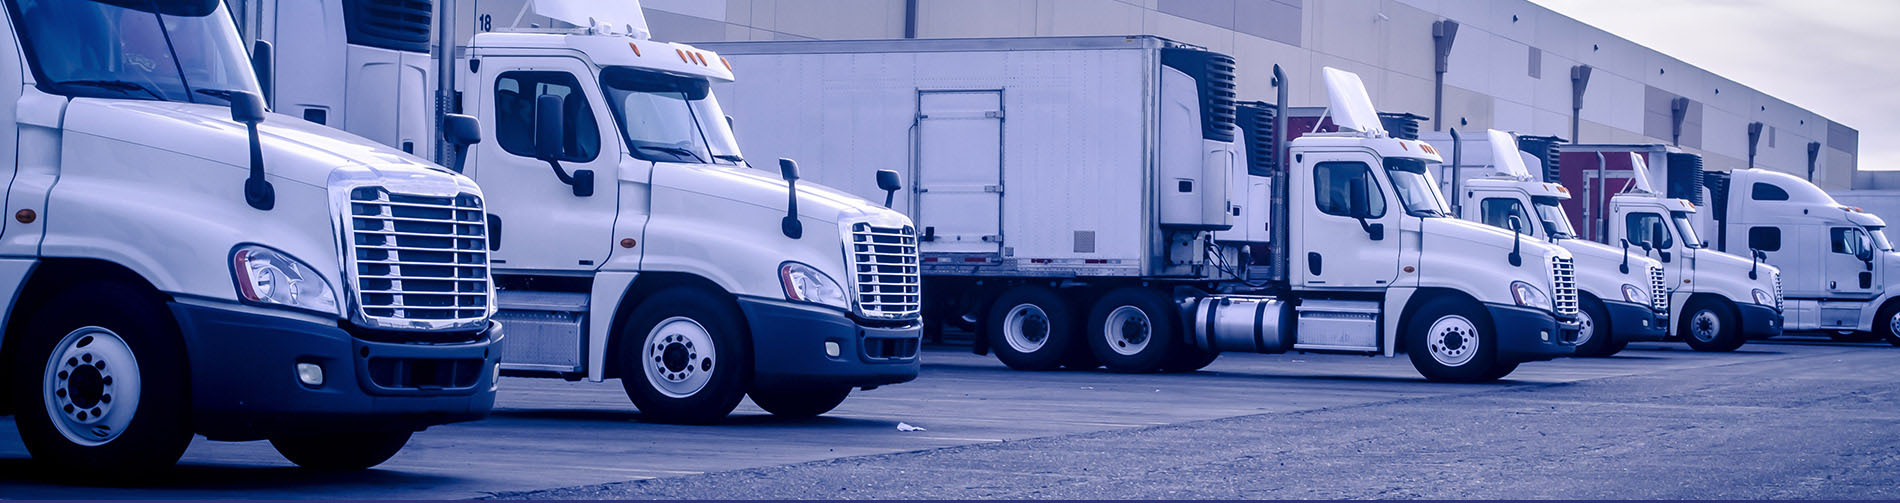 services-warehouse-distribution-trucks-delivery-deliver-shipping-diversified-labeling-solutions